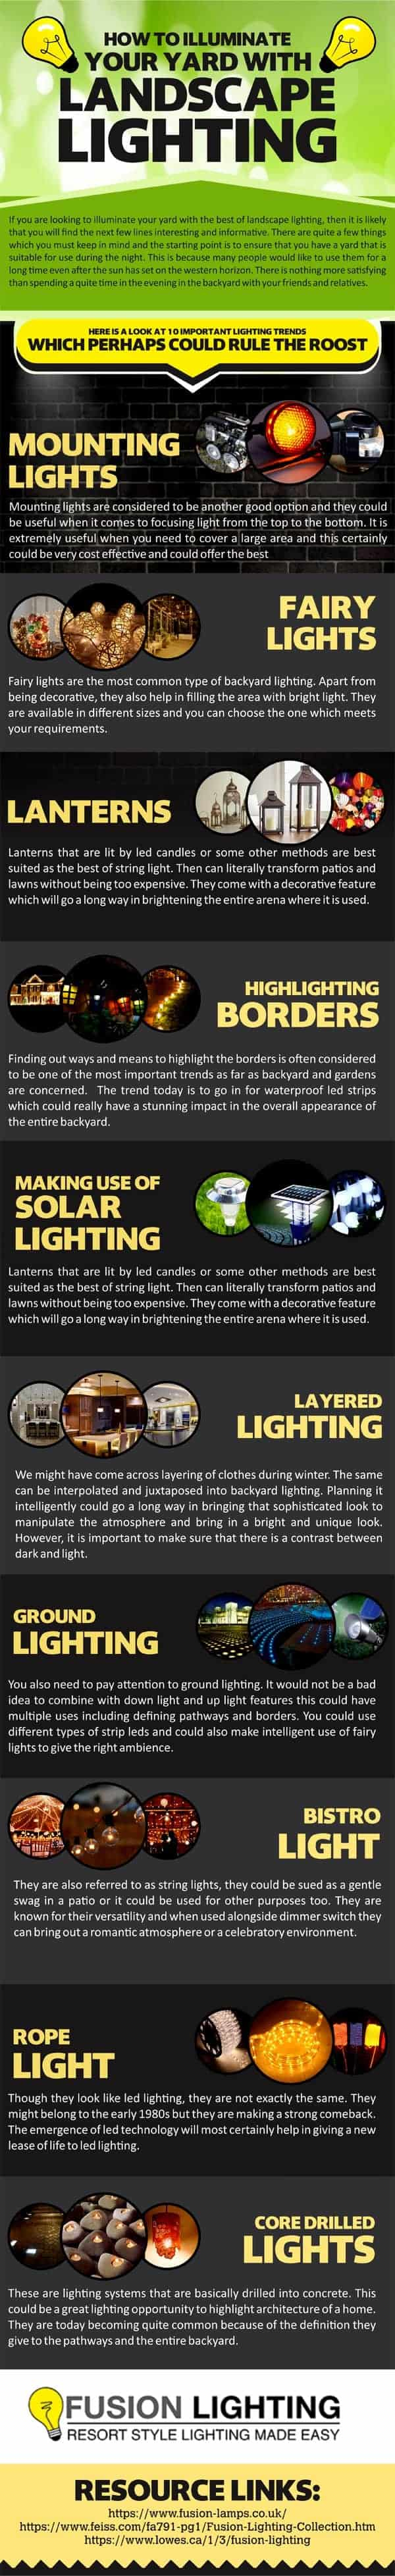 How To Illuminate Your Yard With Landscape Lighting - outdoor-lighting, garden-decor